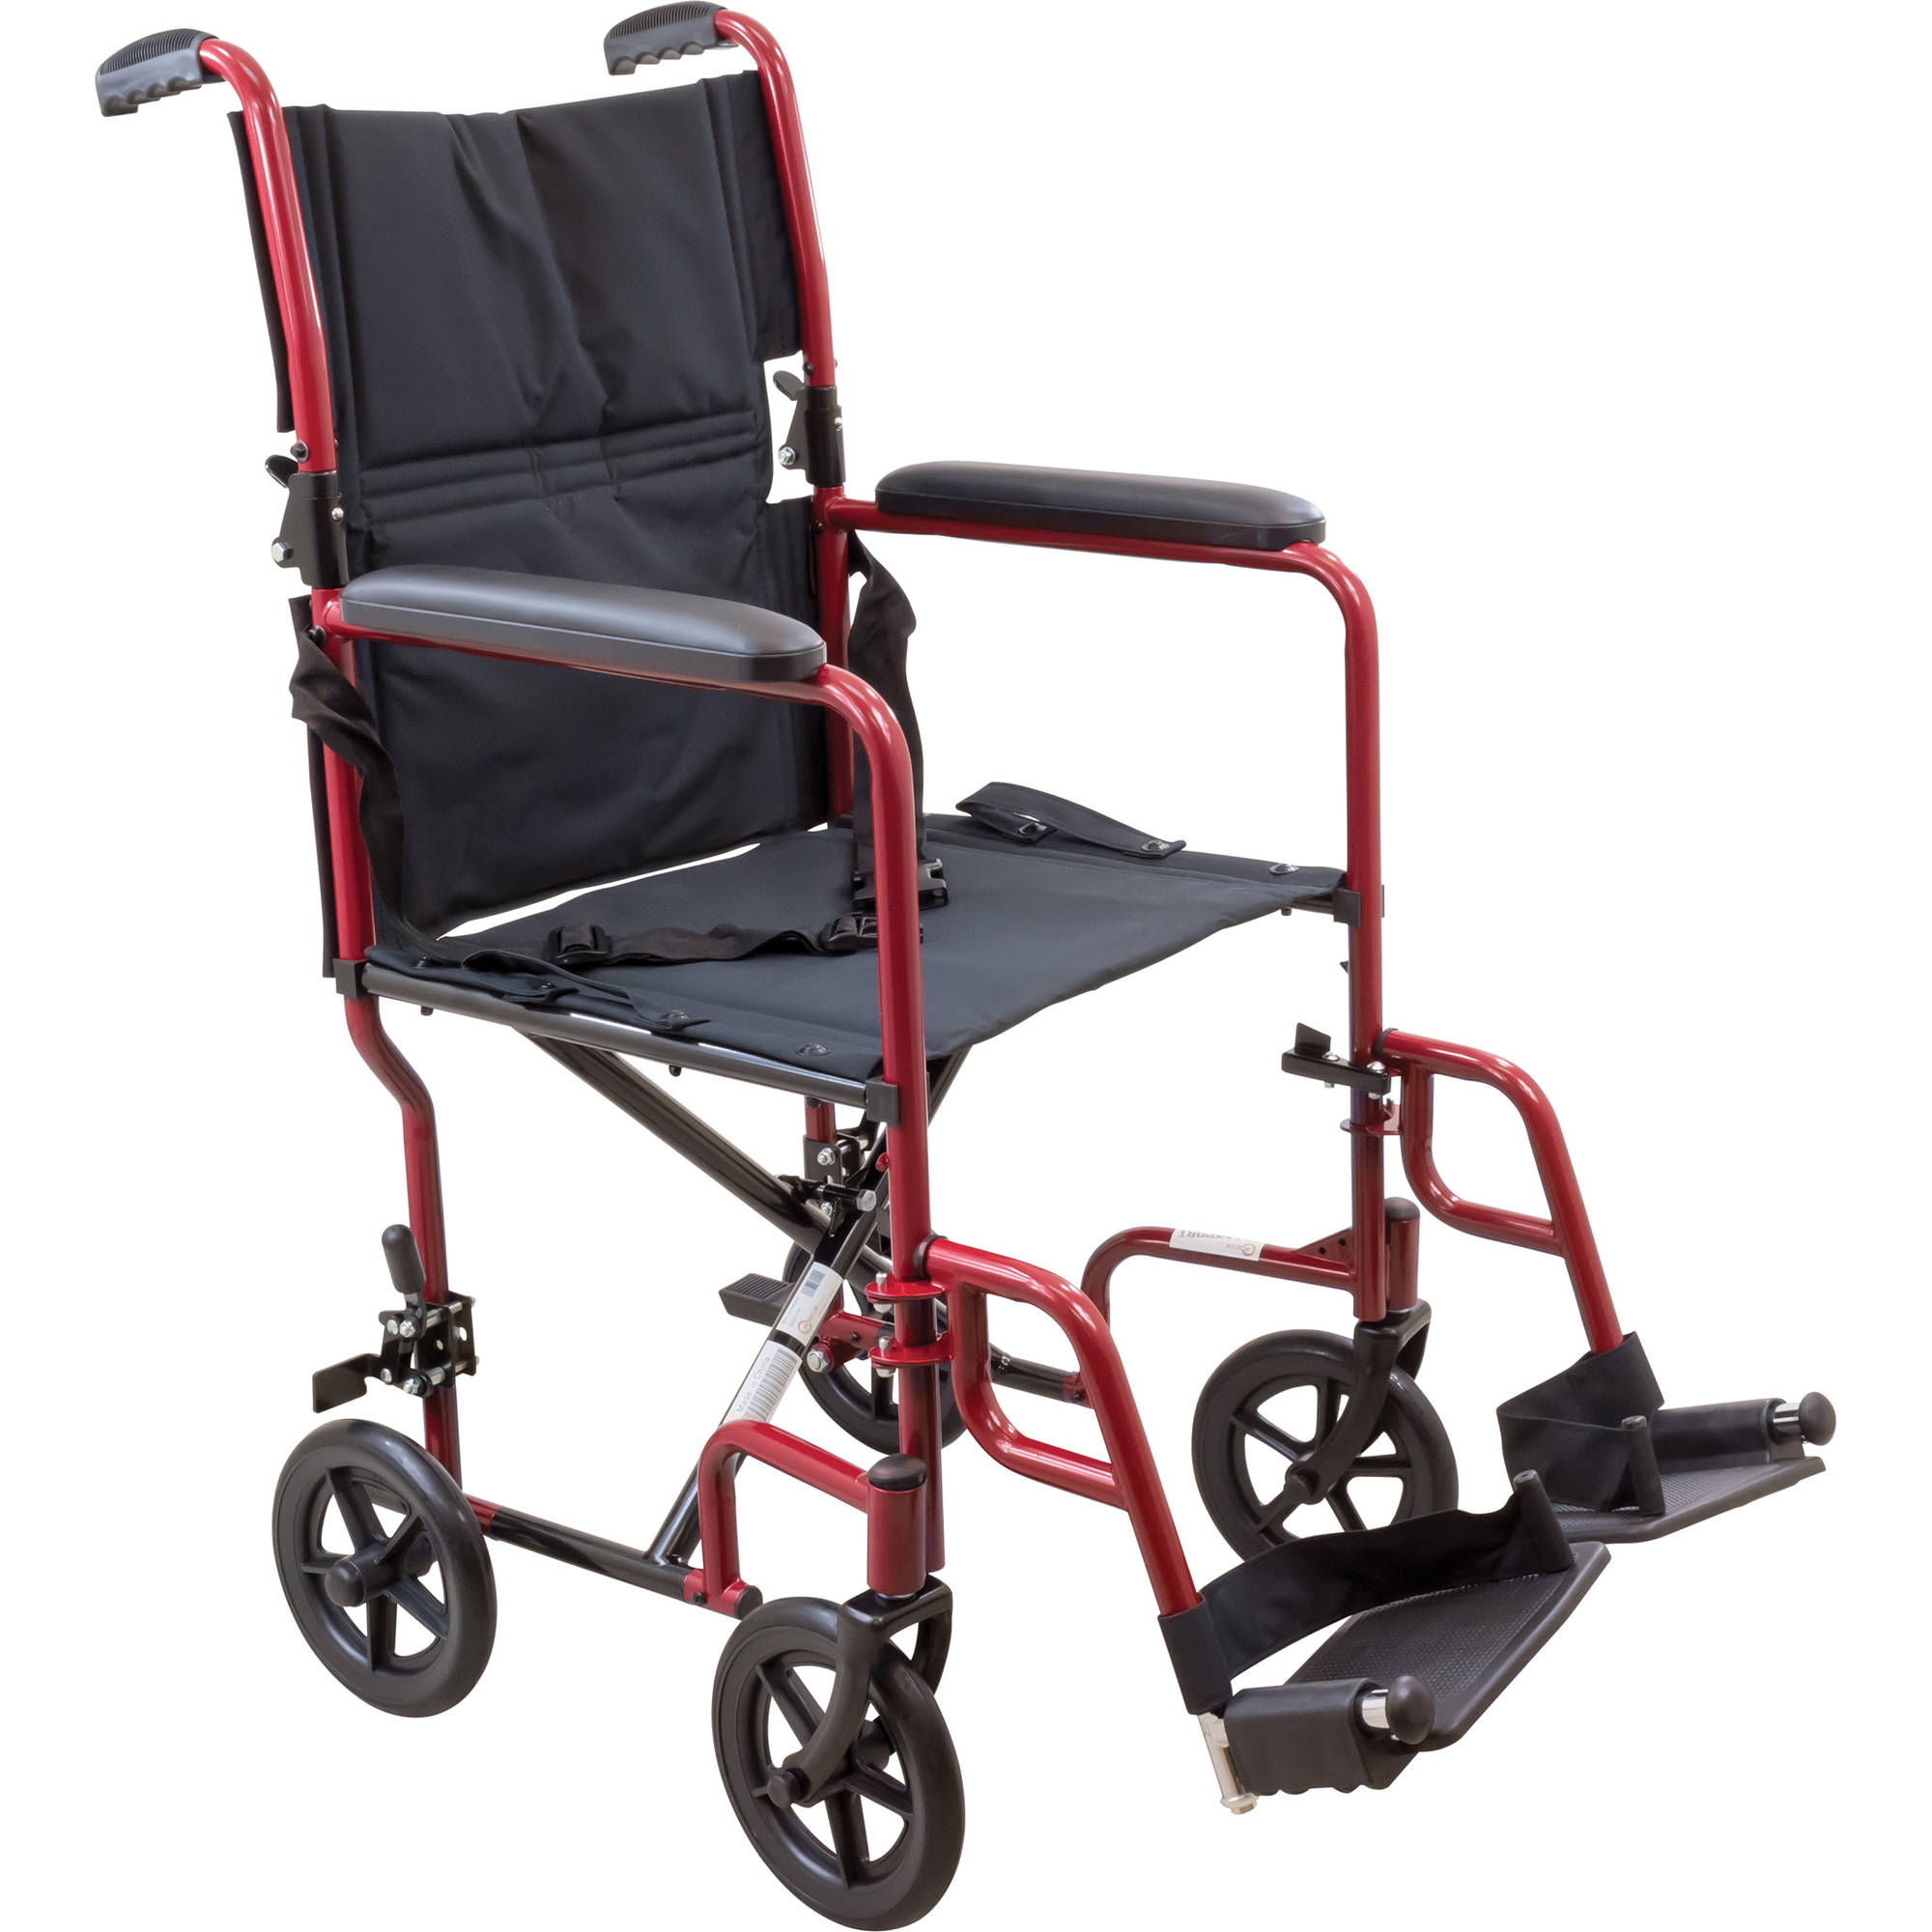 transport chair walgreens padded church chairs roscoe steel wheelchair with 19 seat burgundy walmart com